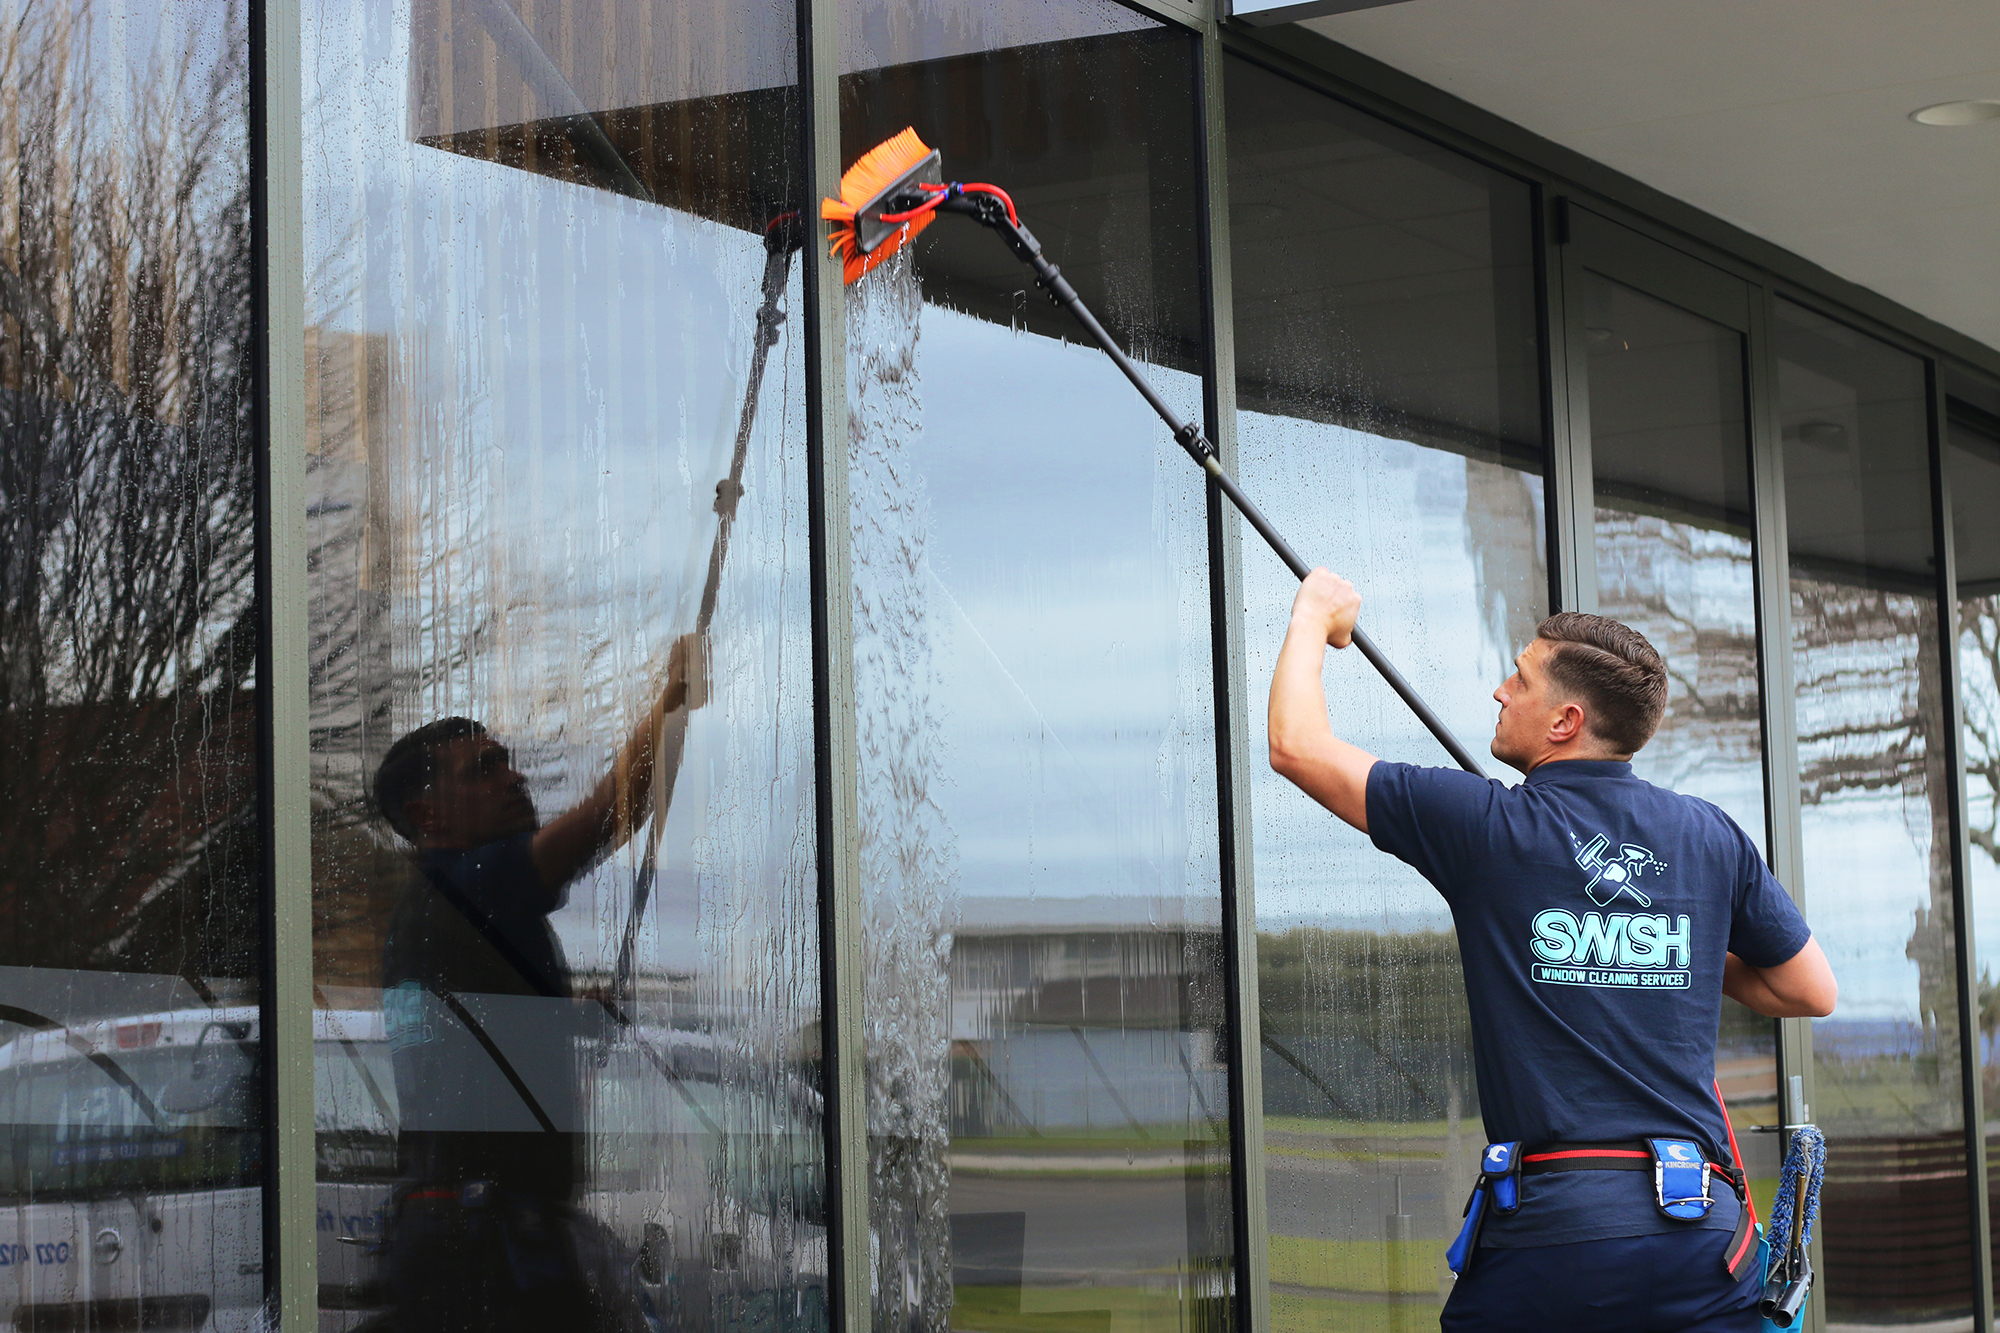 Commercial Window Cleaning - We at SWISH understand the complexities that are involved with Commercial Window Cleaning jobs, we are problem solvers and all our cleaners always act professionally and put 100% into their work. We are here to get your windows sparkling clean so you can concentrate on what you do best, in a premises that looks a million bucks!